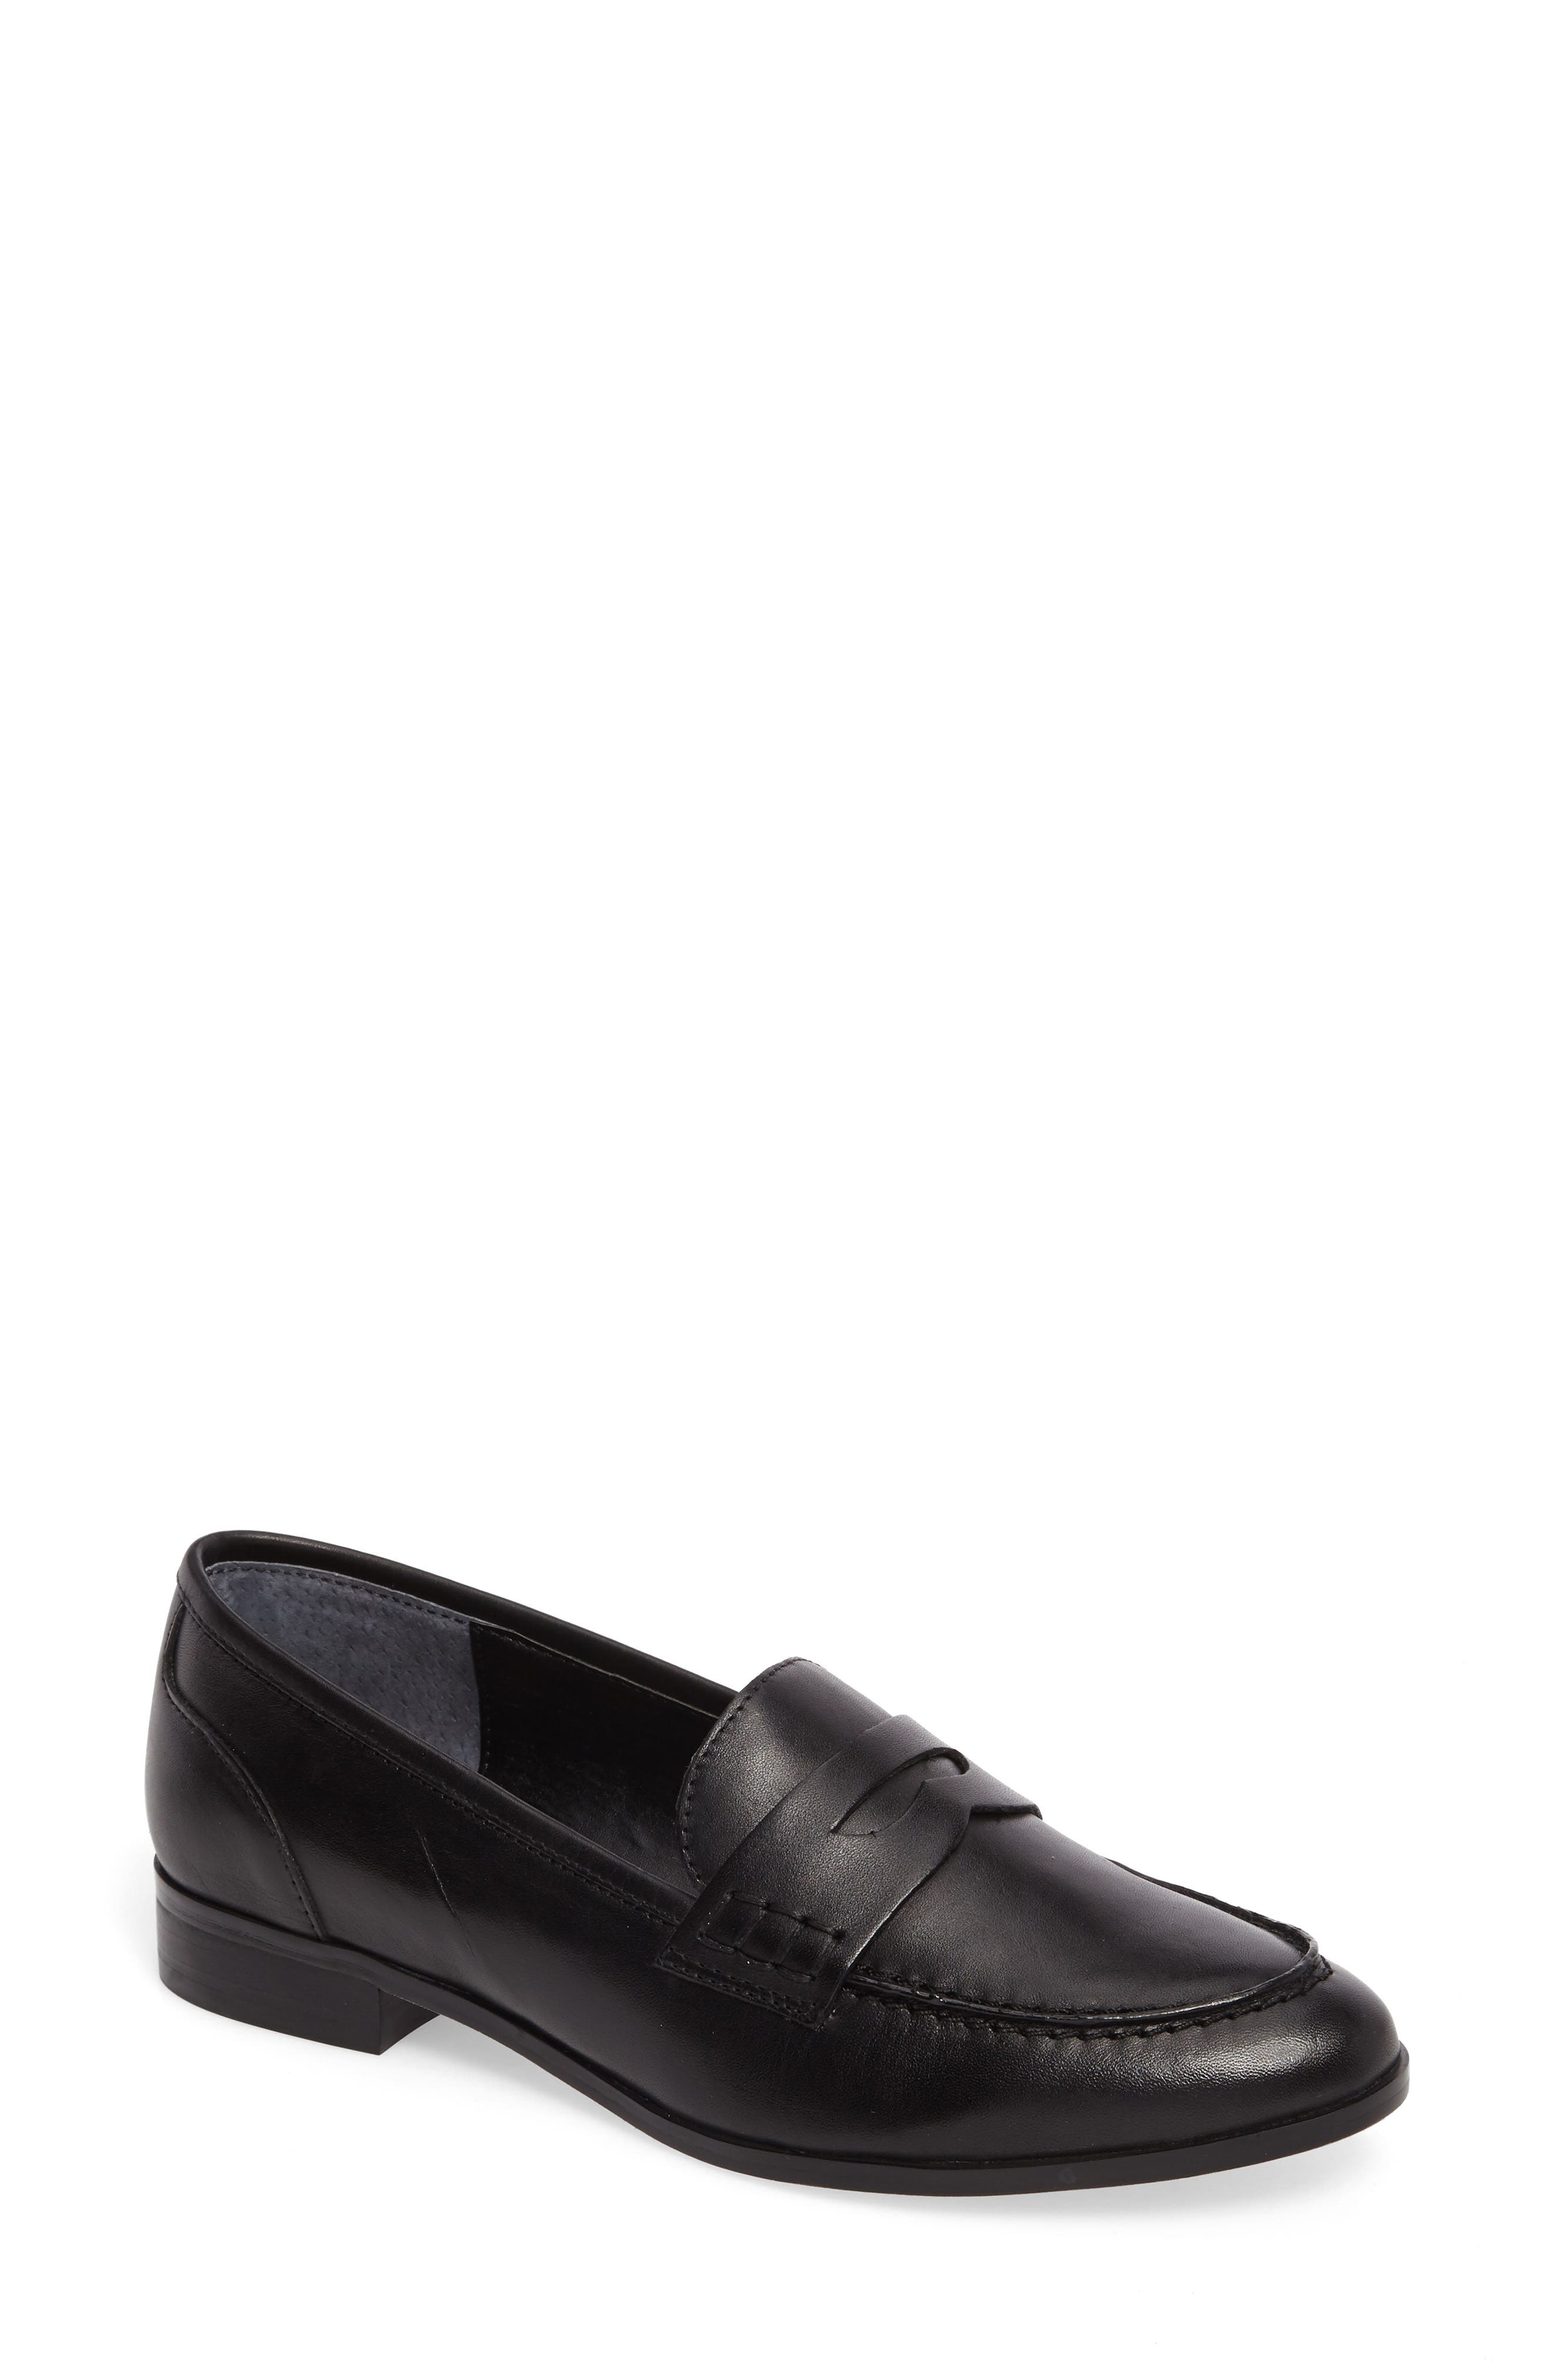 Georgie Penny Loafer,                             Main thumbnail 1, color,                             001